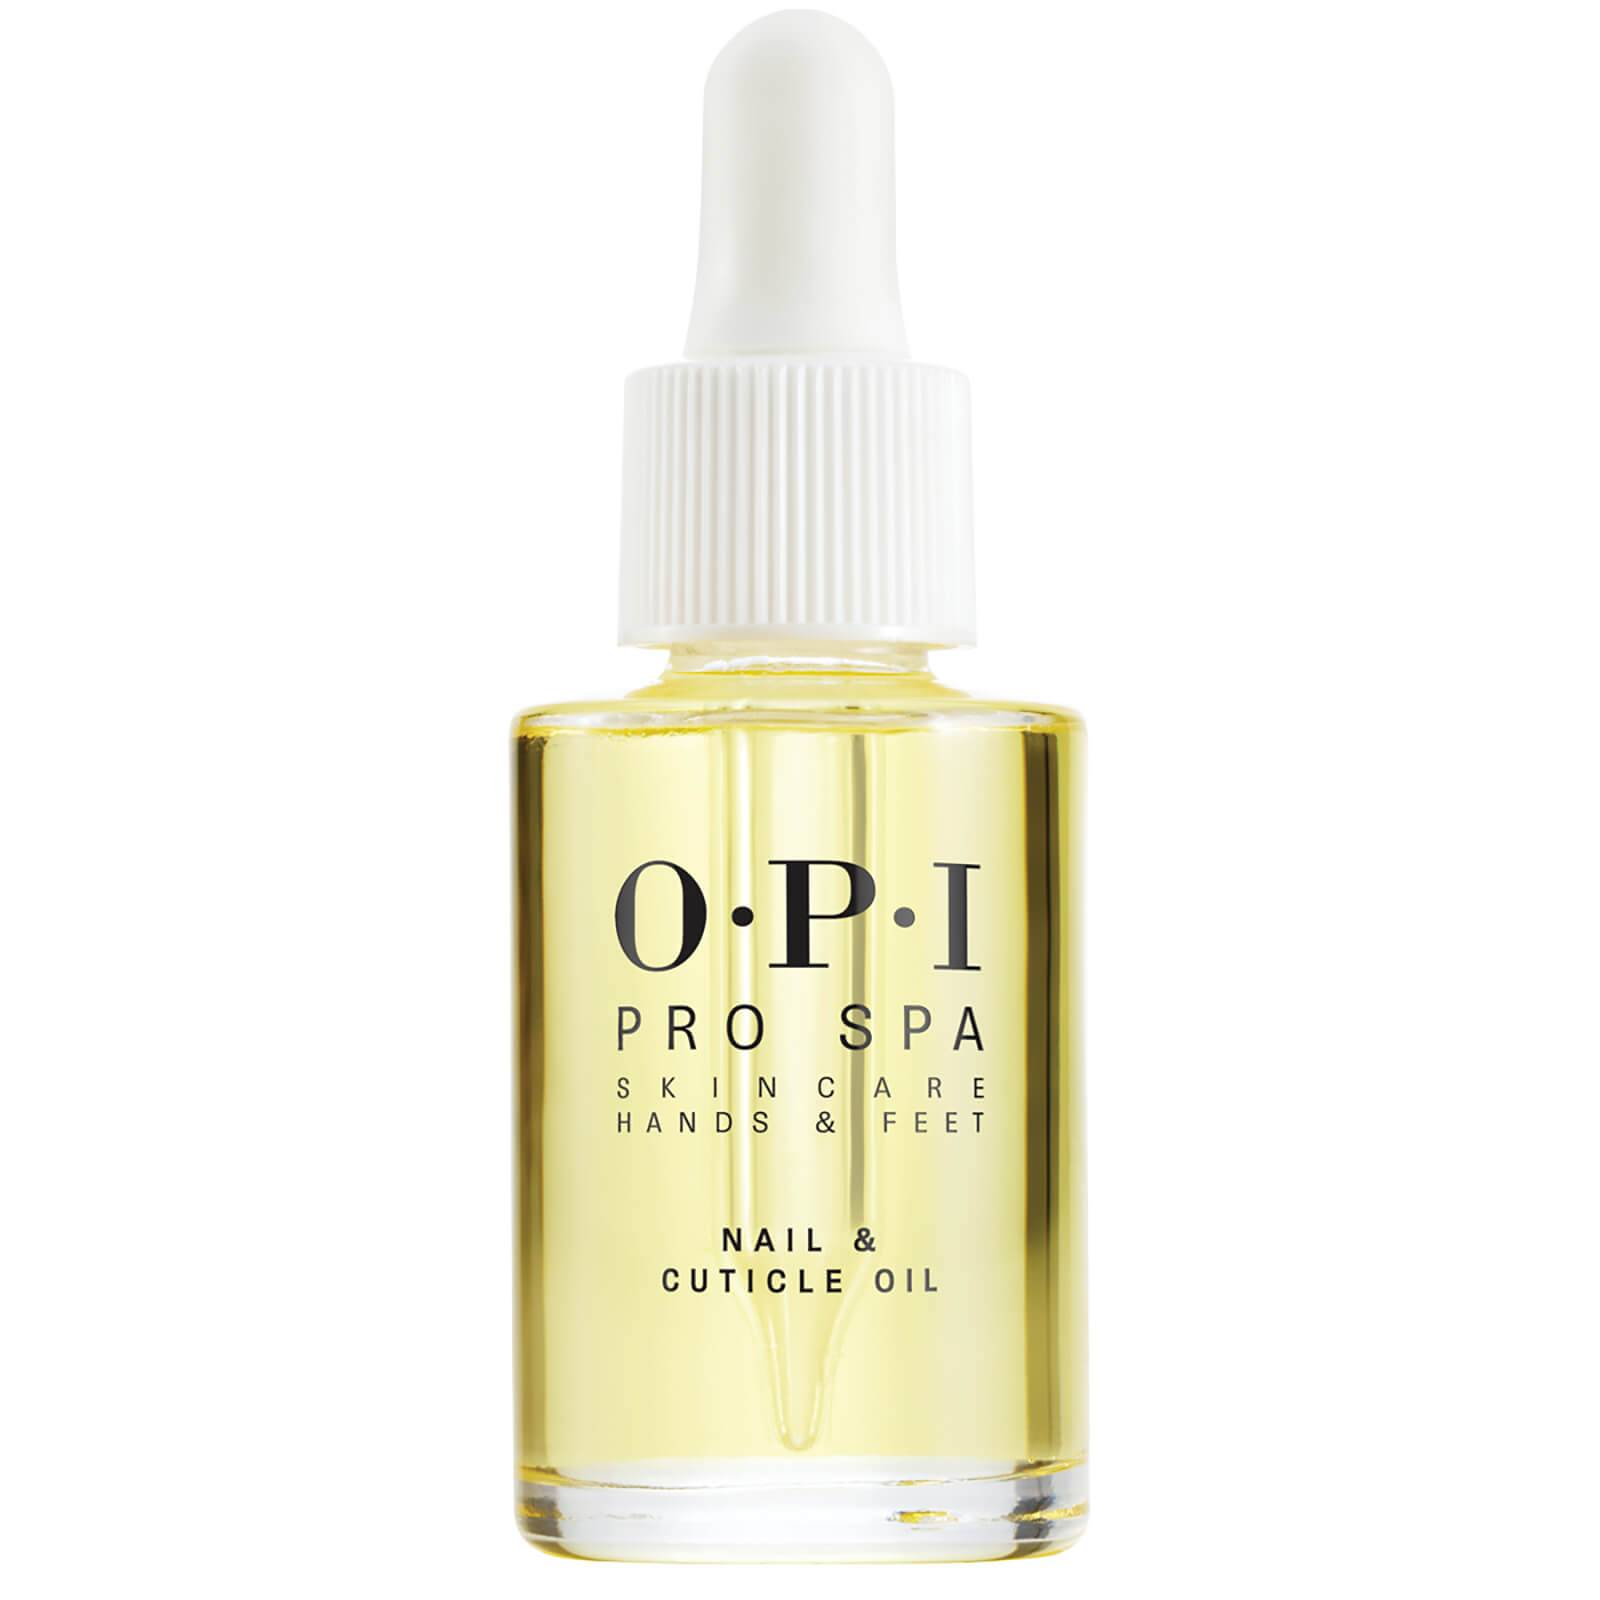 OPI Huile ongles et cuticules PRO SPA OPI (plusieurs formats disponibles) - 28ml